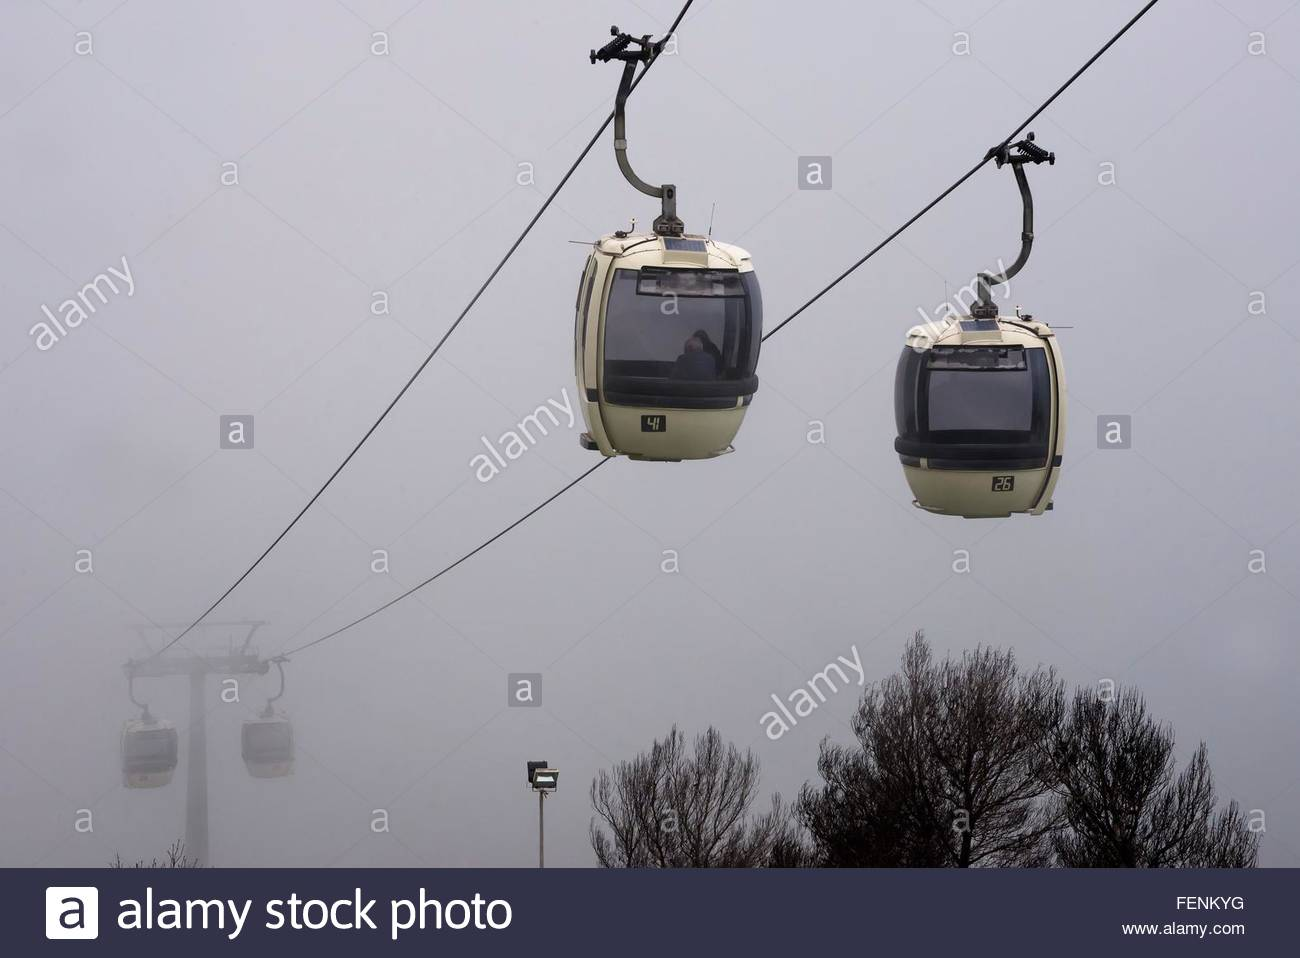 Trapani- Erice cablecars in mist, Sicily, Italy - Stock Image